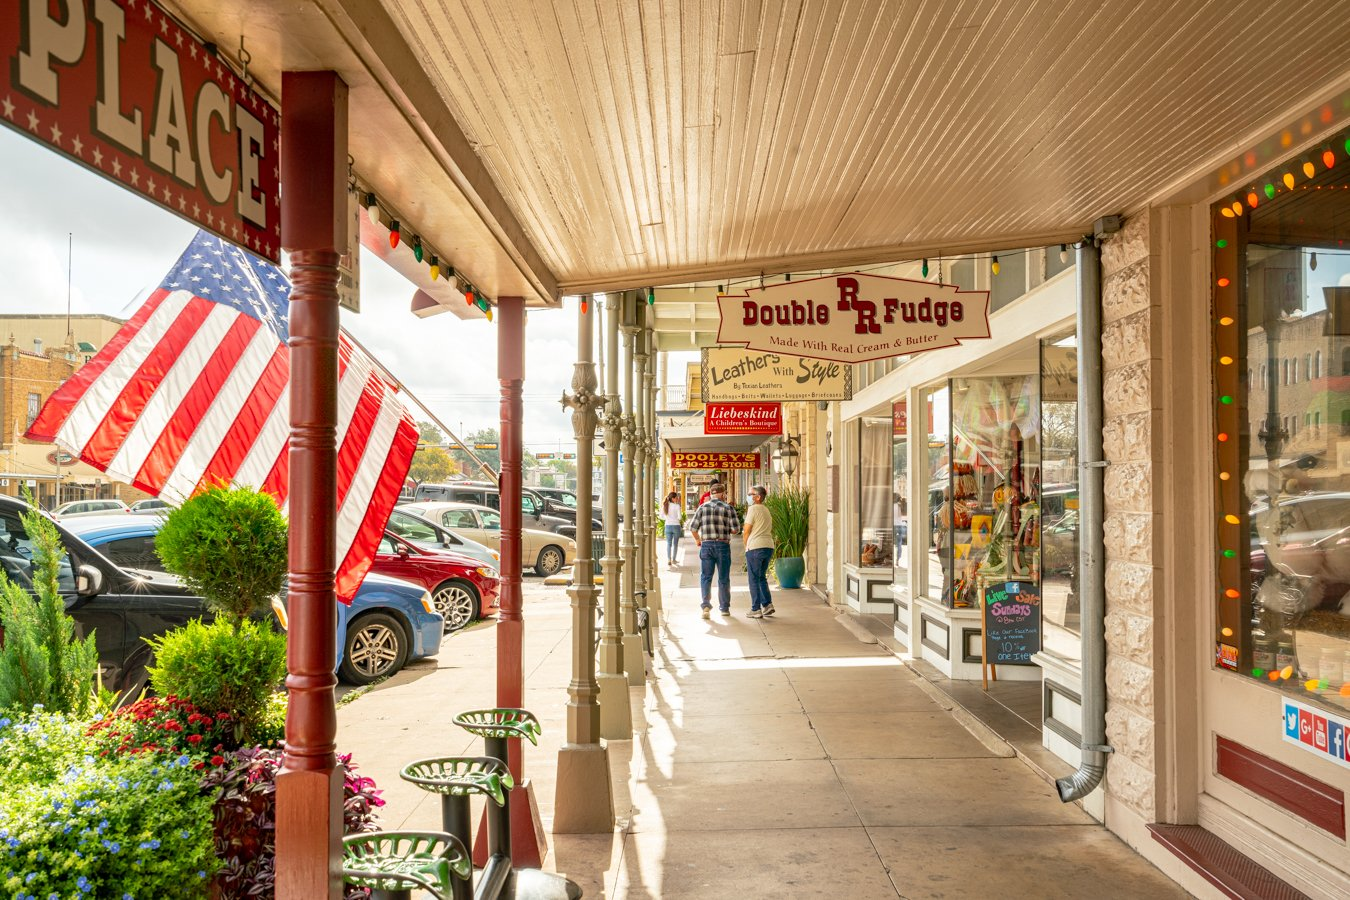 signs for shops along main street with an american flag blowing. visiting main street is one of the best things to do in fredericksburg tx